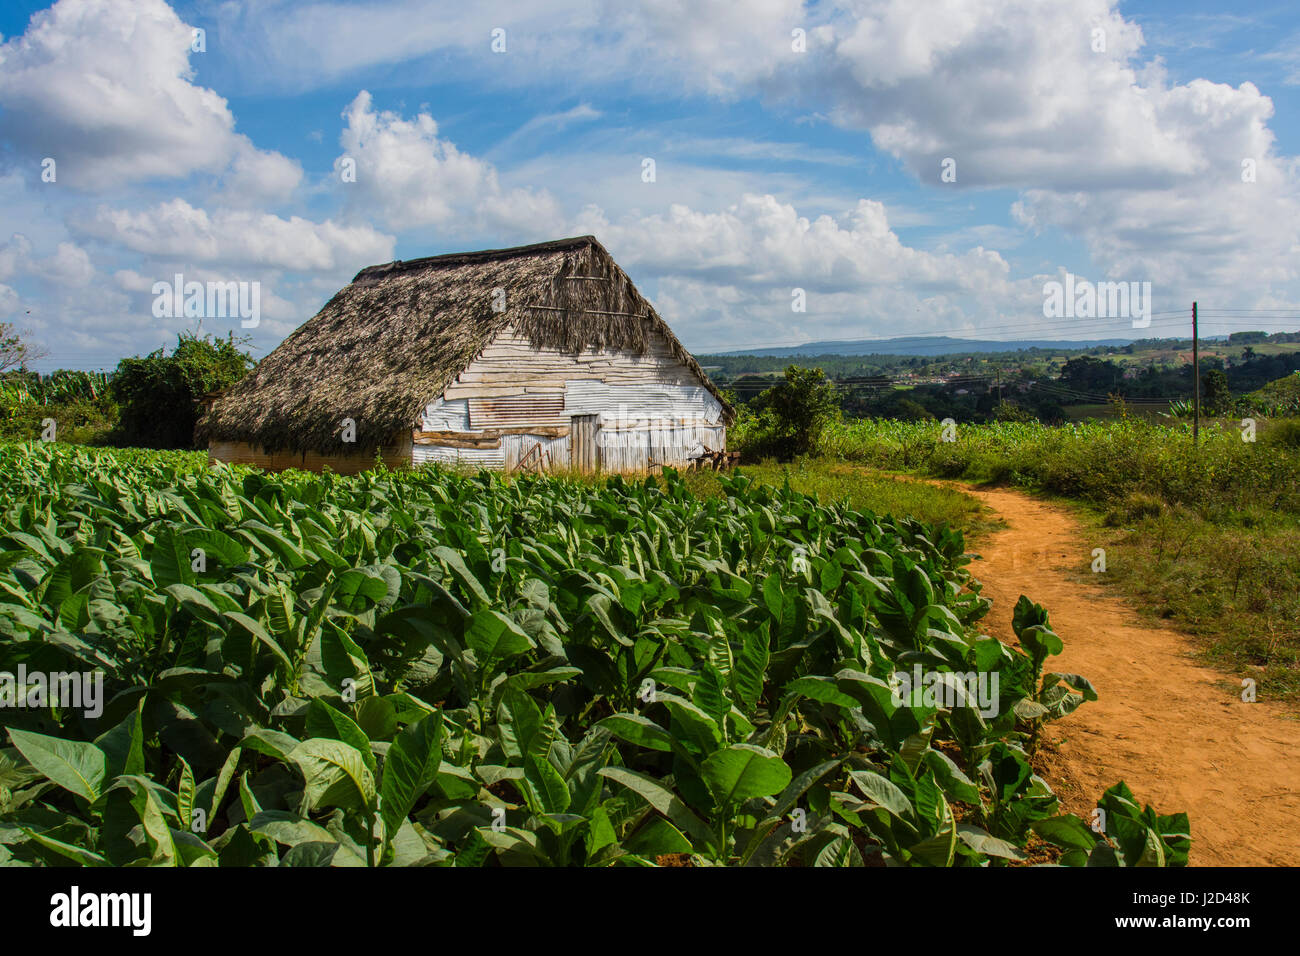 Cuba. Pinar del Rio. Vinales. Barn surrounded by tobacco fields. - Stock Image